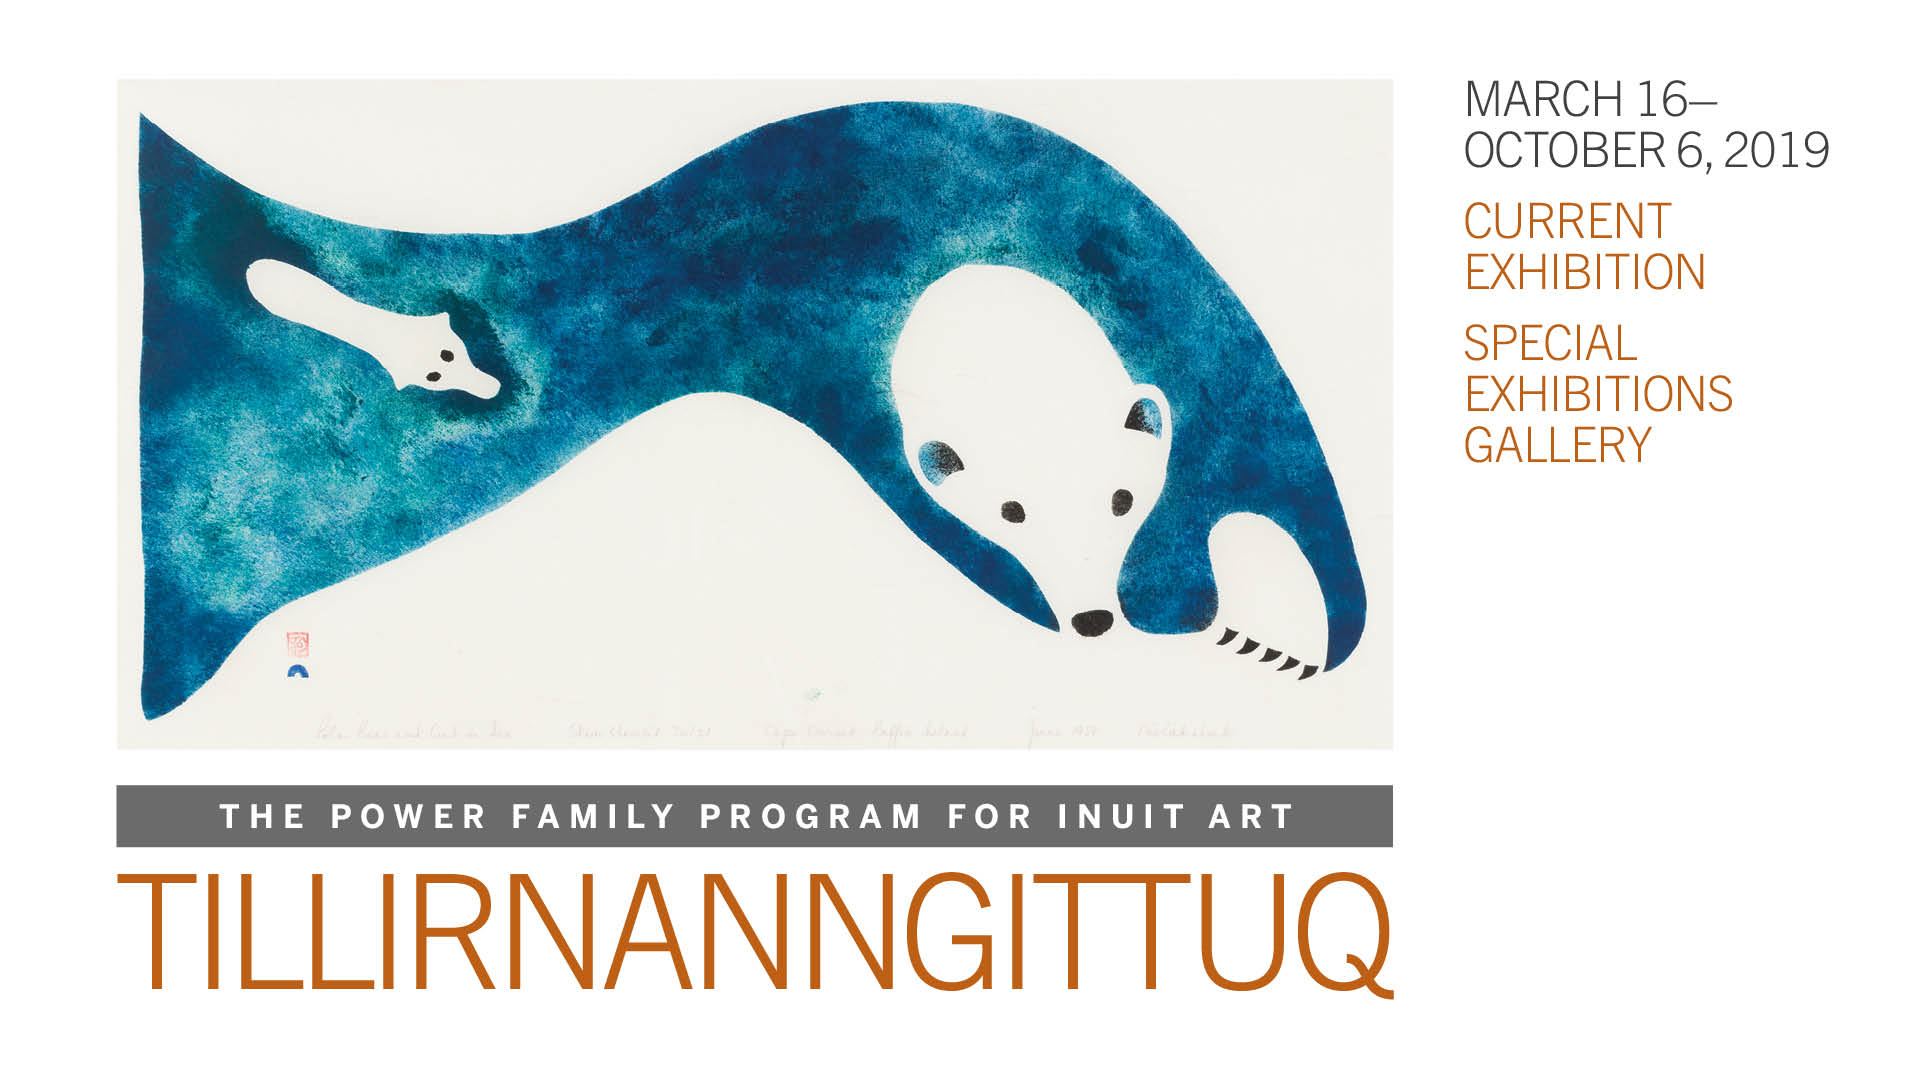 The Power Family Program for Inuit Art: Tillirnanngittuq, on view through October 6, 2019